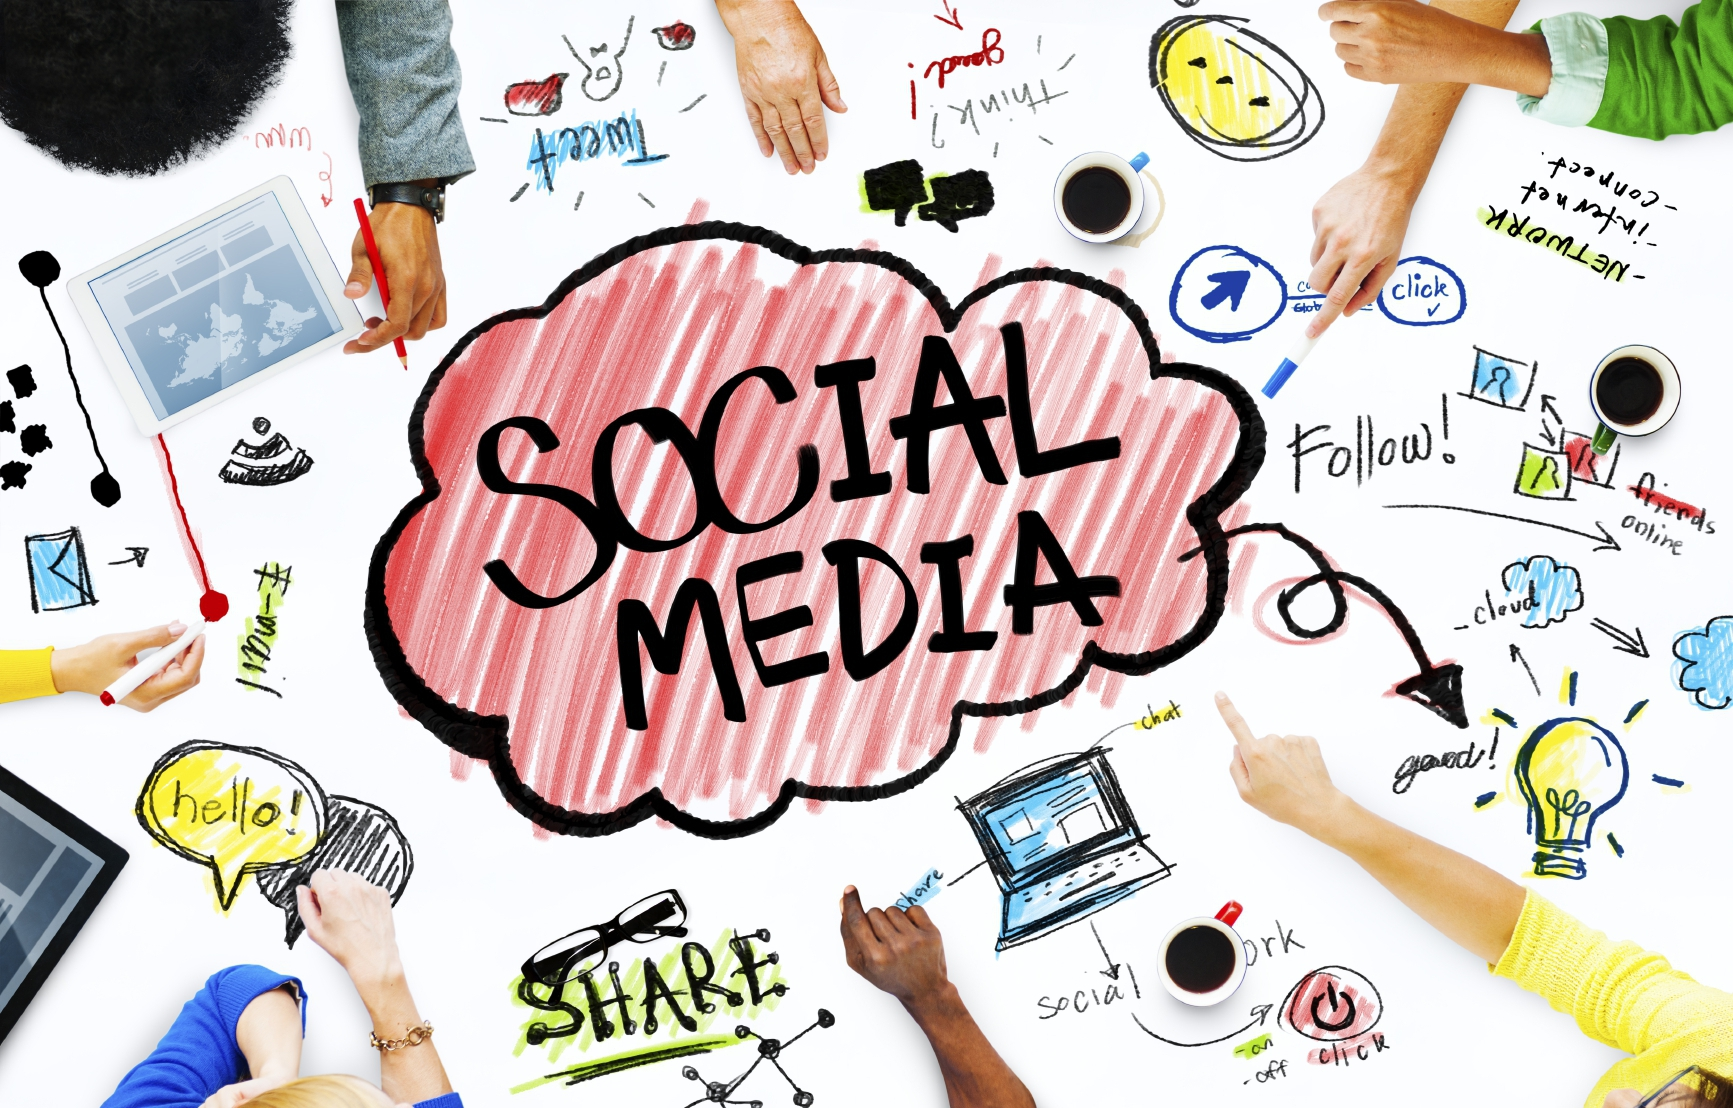 Charity Marketing & Social Media: How Can You Reach Your Goals?